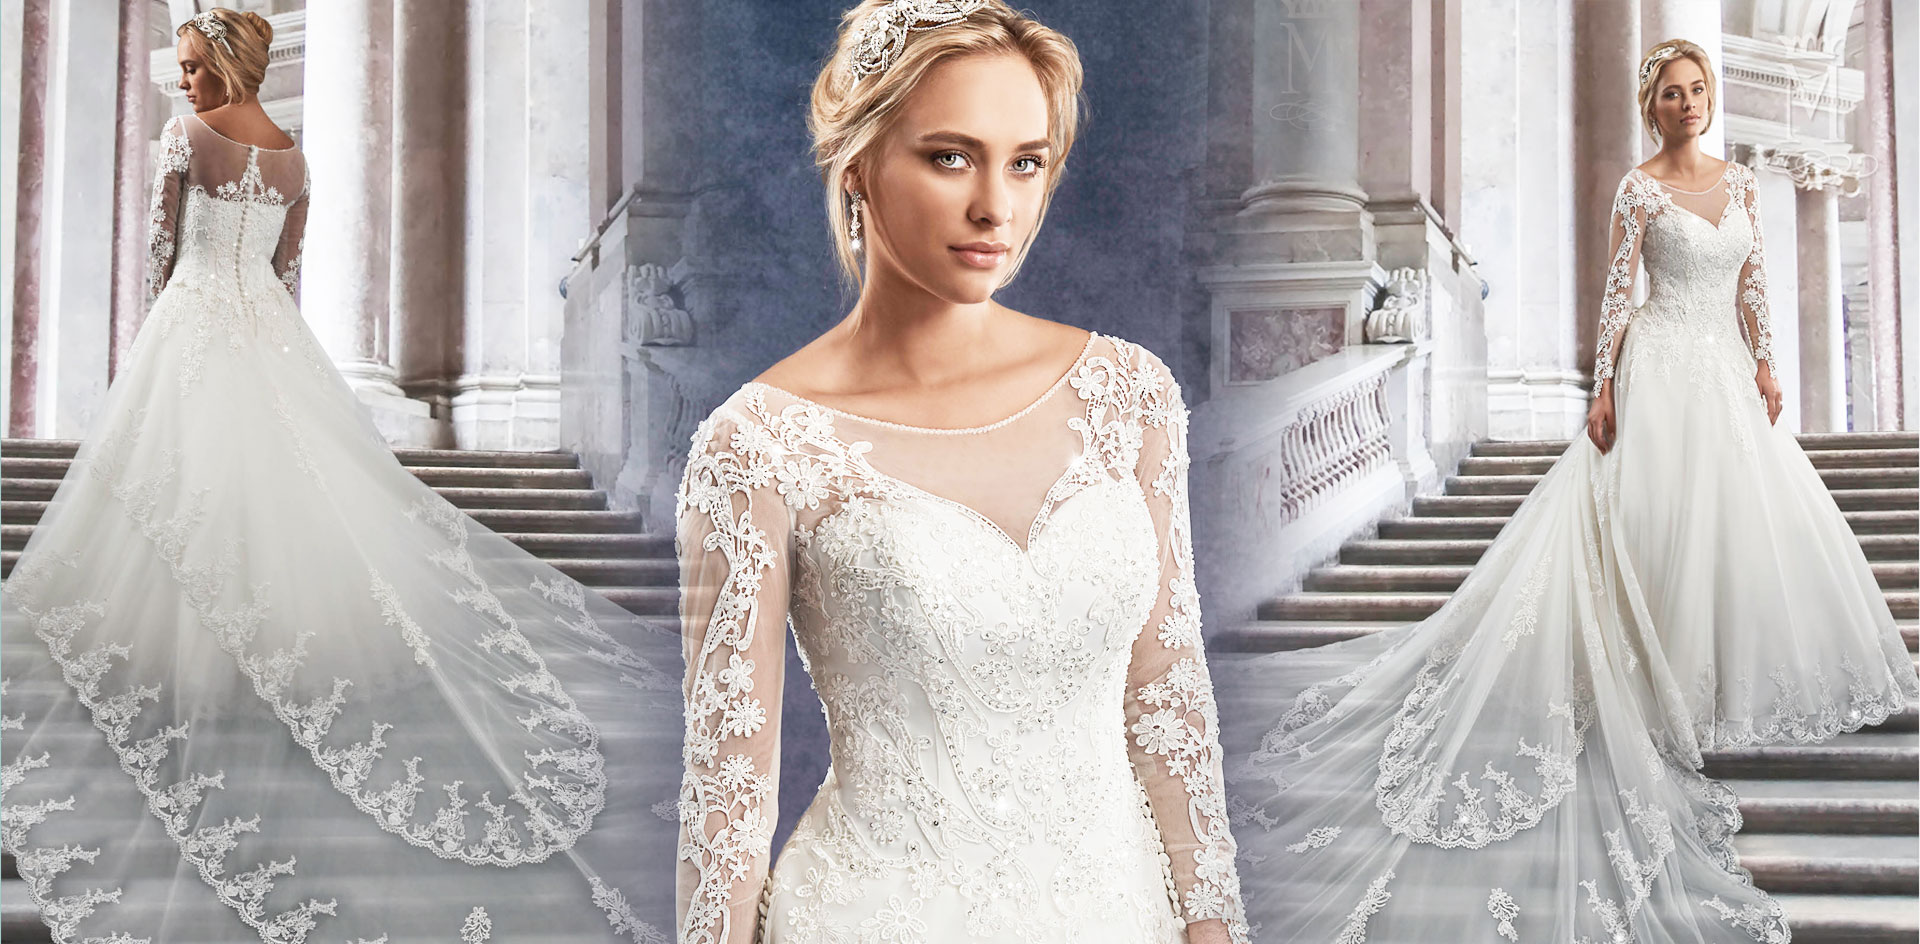 wedding dresses, bridal gowns & formal dresses | mary's bridal